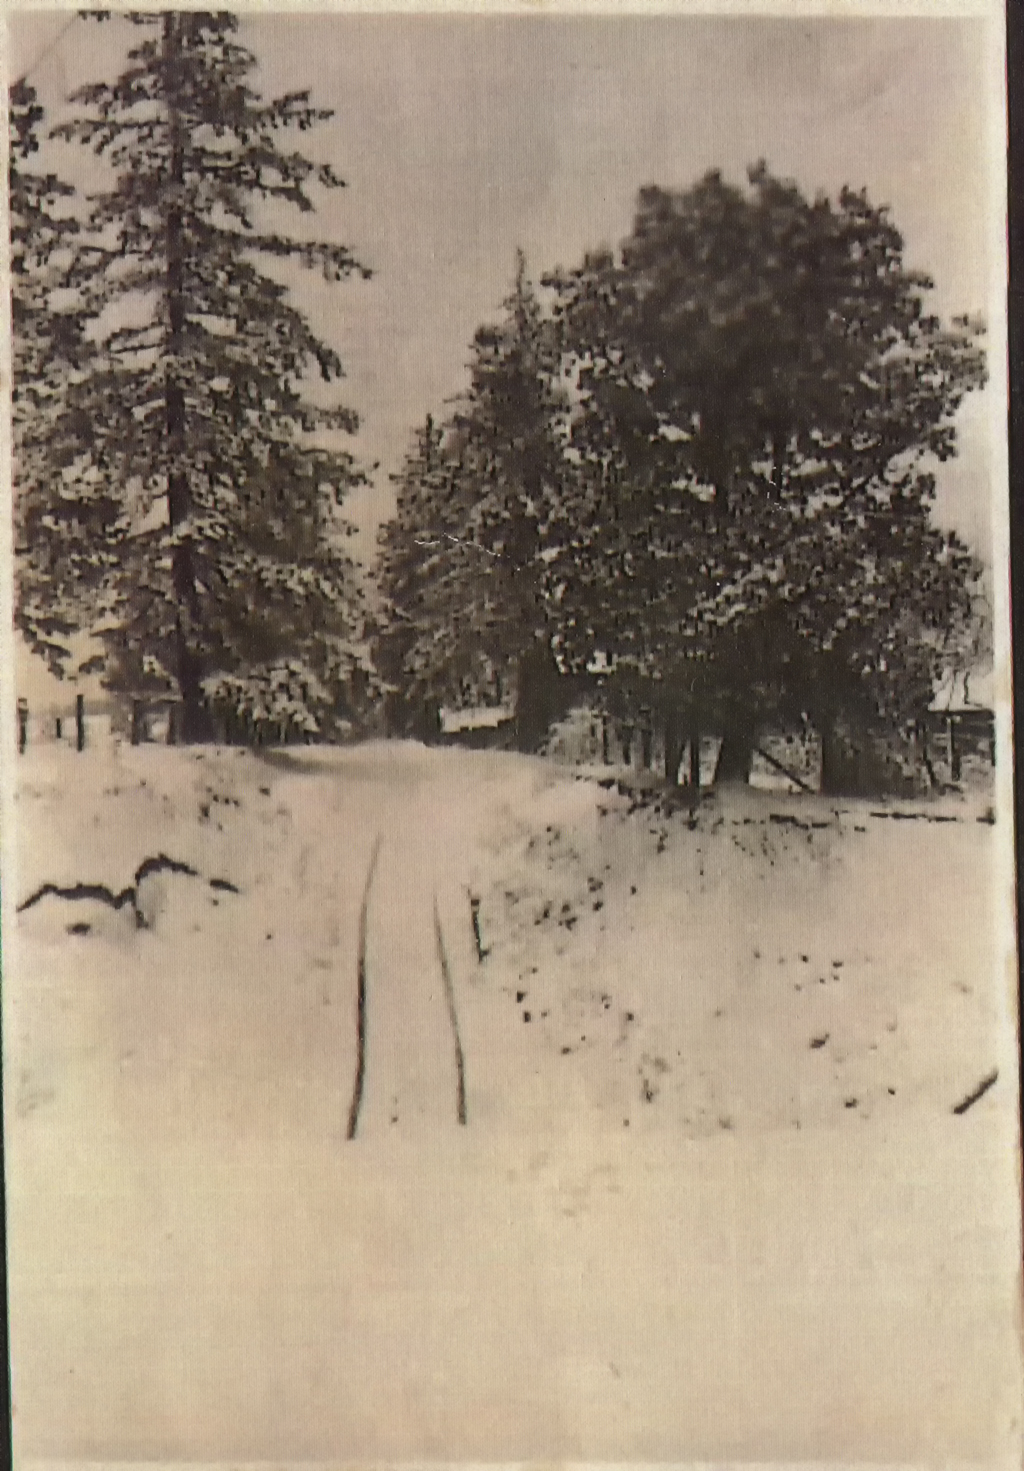 Unidentified Street covered in snow in Multnomah Oregon, ca. 1920.